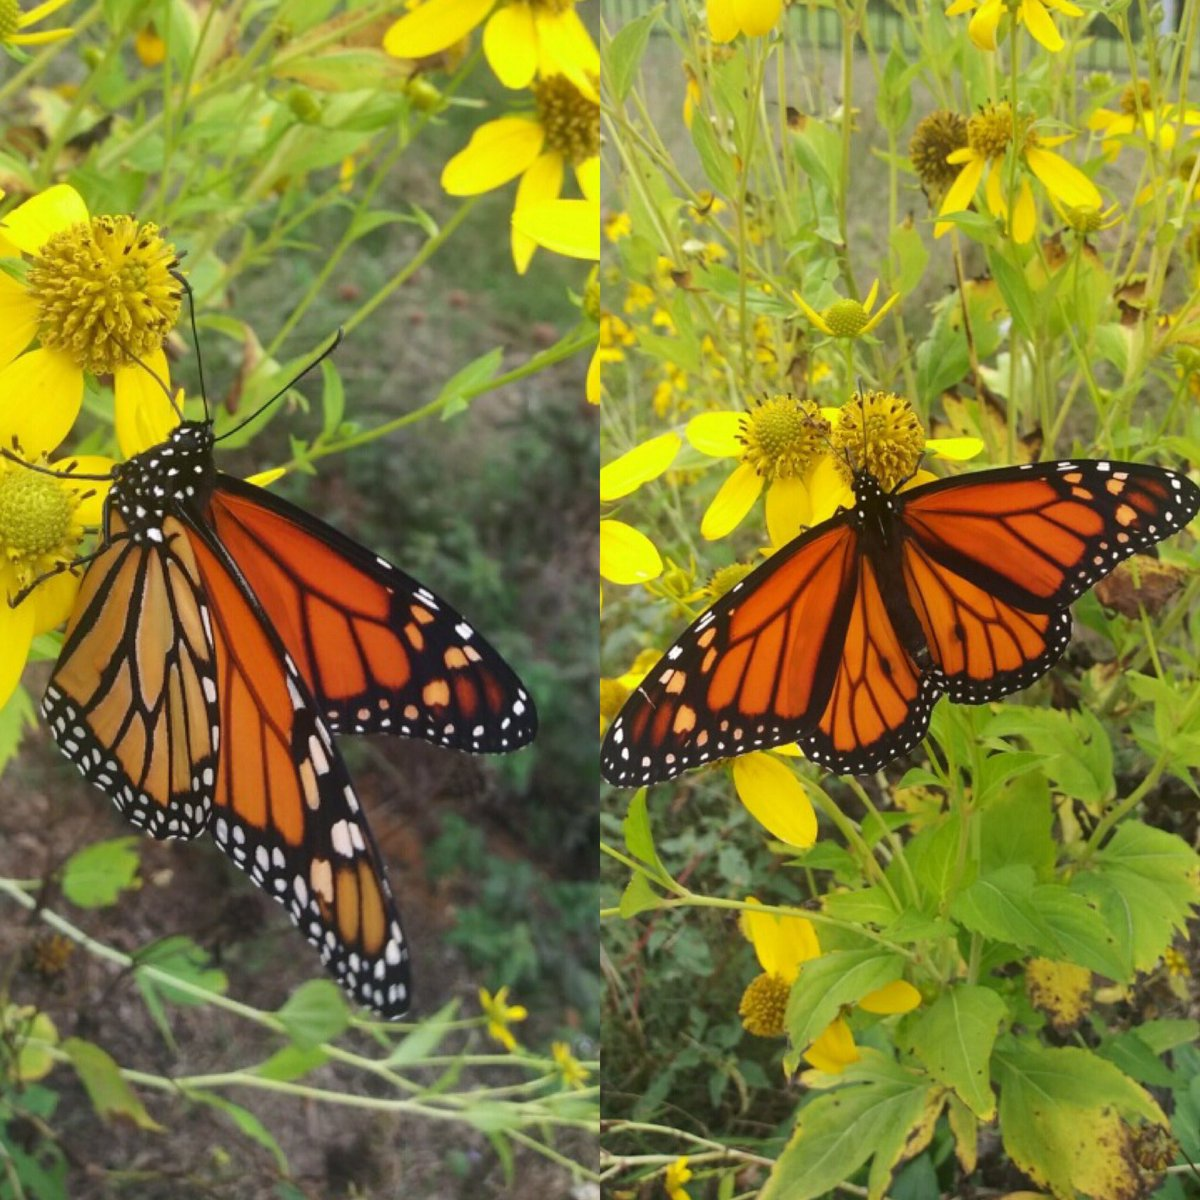 We had a very special guest outside today! A monarch butterfly emerged from his chrysalis and drank from a native wildflower.  #monarchbutterfly #science #pollinators #steam #visithandson #hodc #apphighlands #visitjohnsoncity #visitkingsport #northeasttennessee https://t.co/1iTil9E2nu